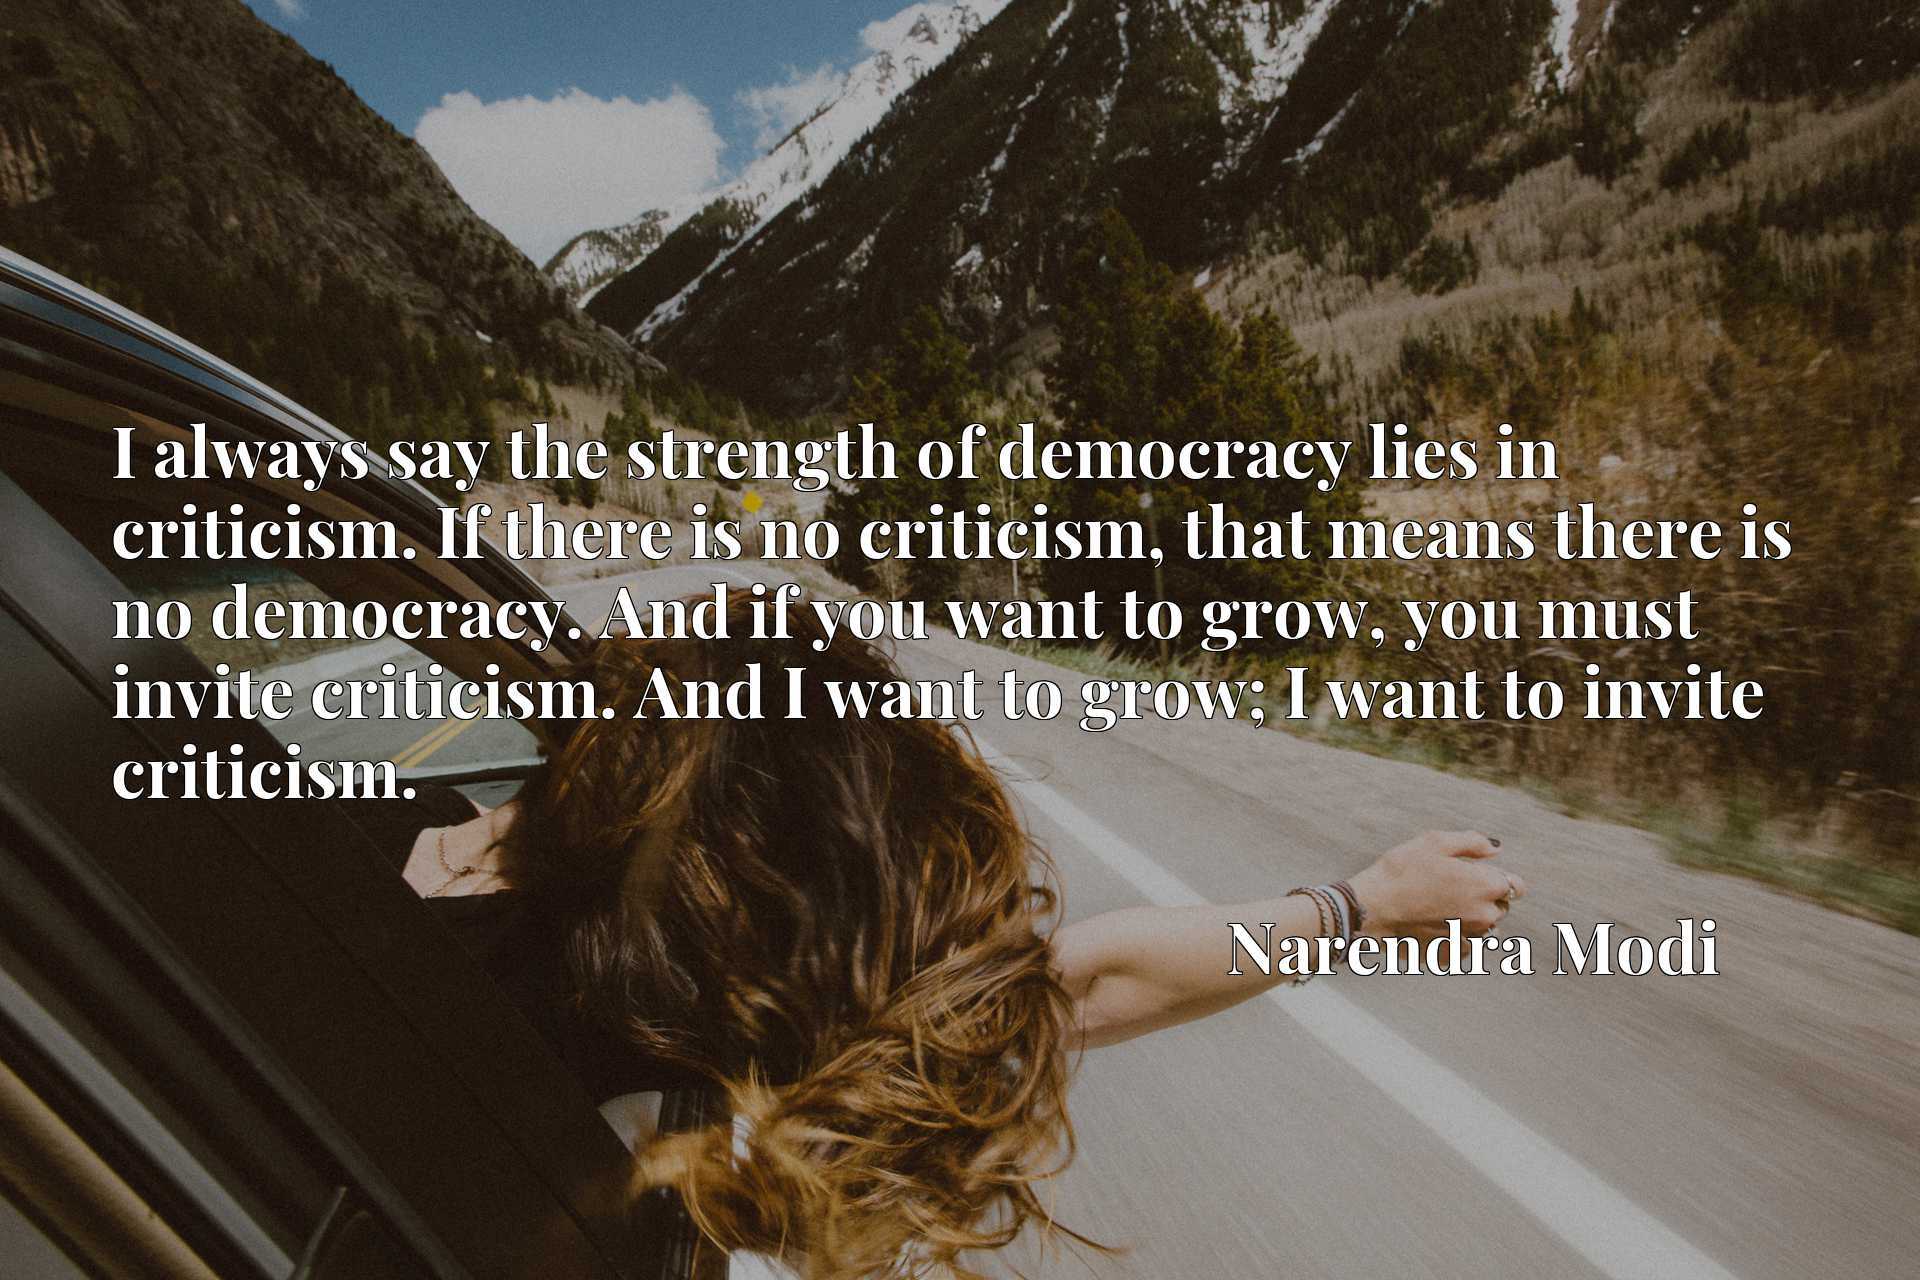 I always say the strength of democracy lies in criticism. If there is no criticism, that means there is no democracy. And if you want to grow, you must invite criticism. And I want to grow; I want to invite criticism.